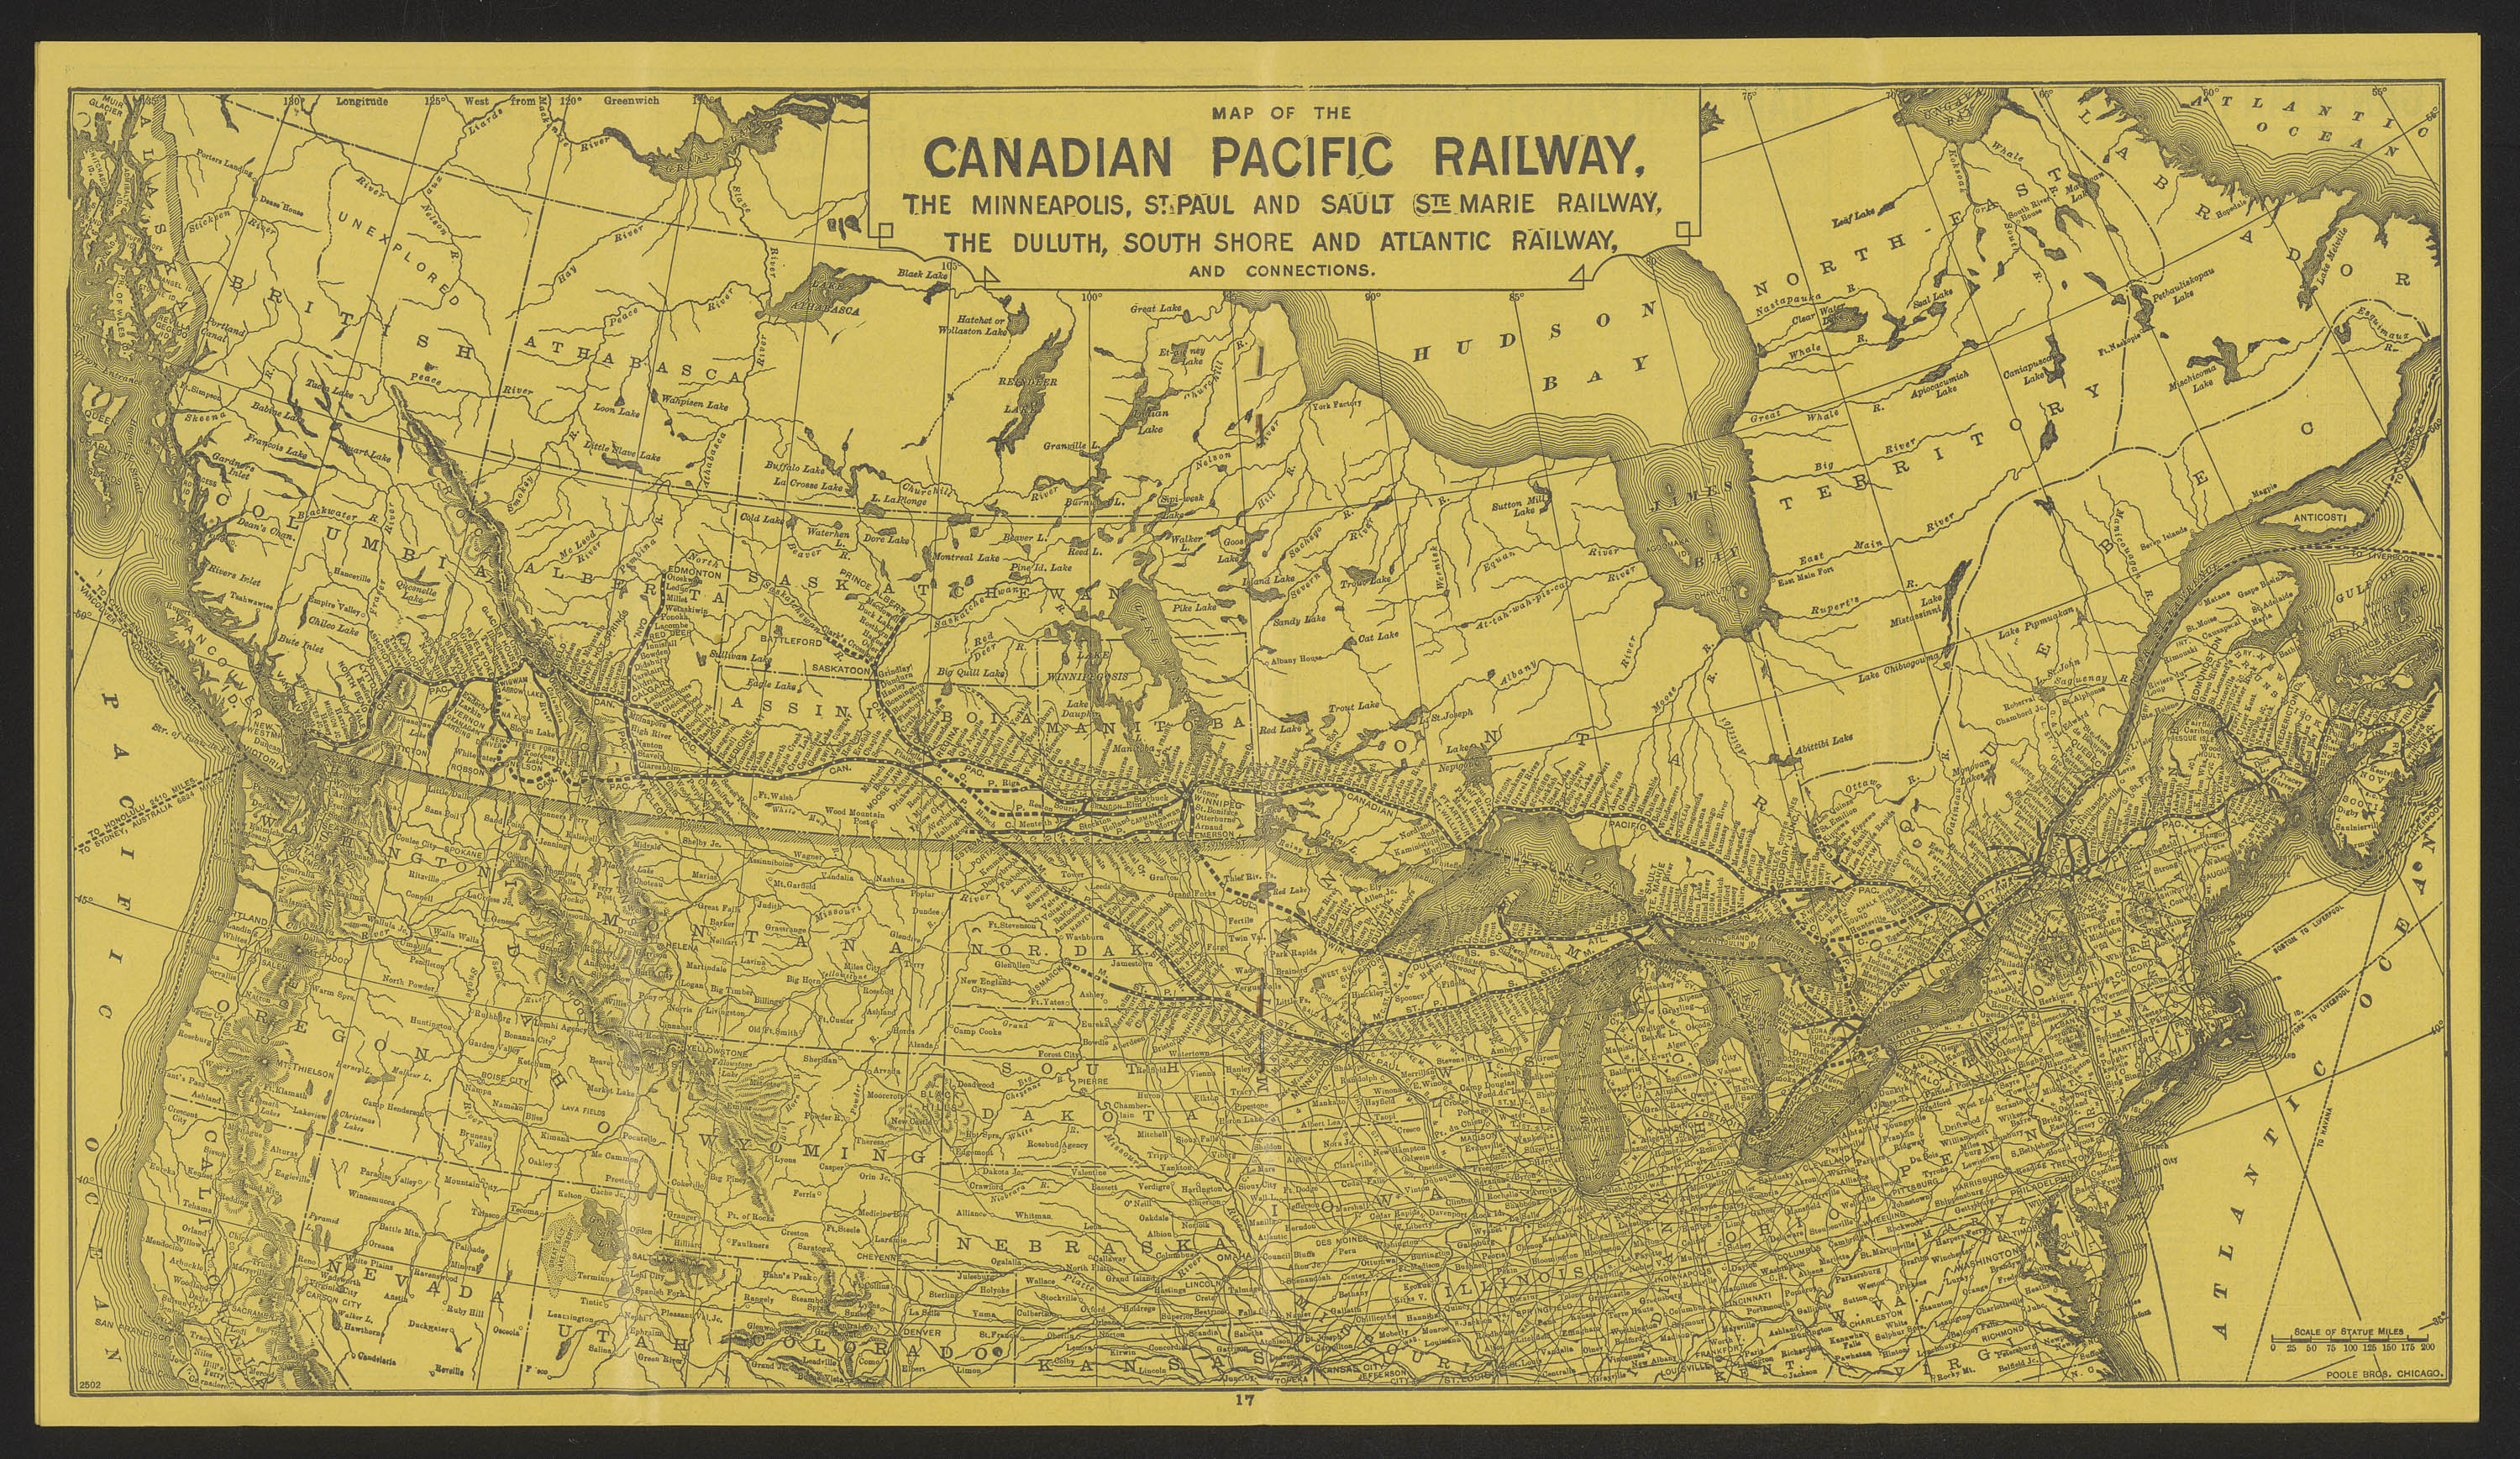 Map of the Eastern Lines, Canadian Pacific Railway. 1896